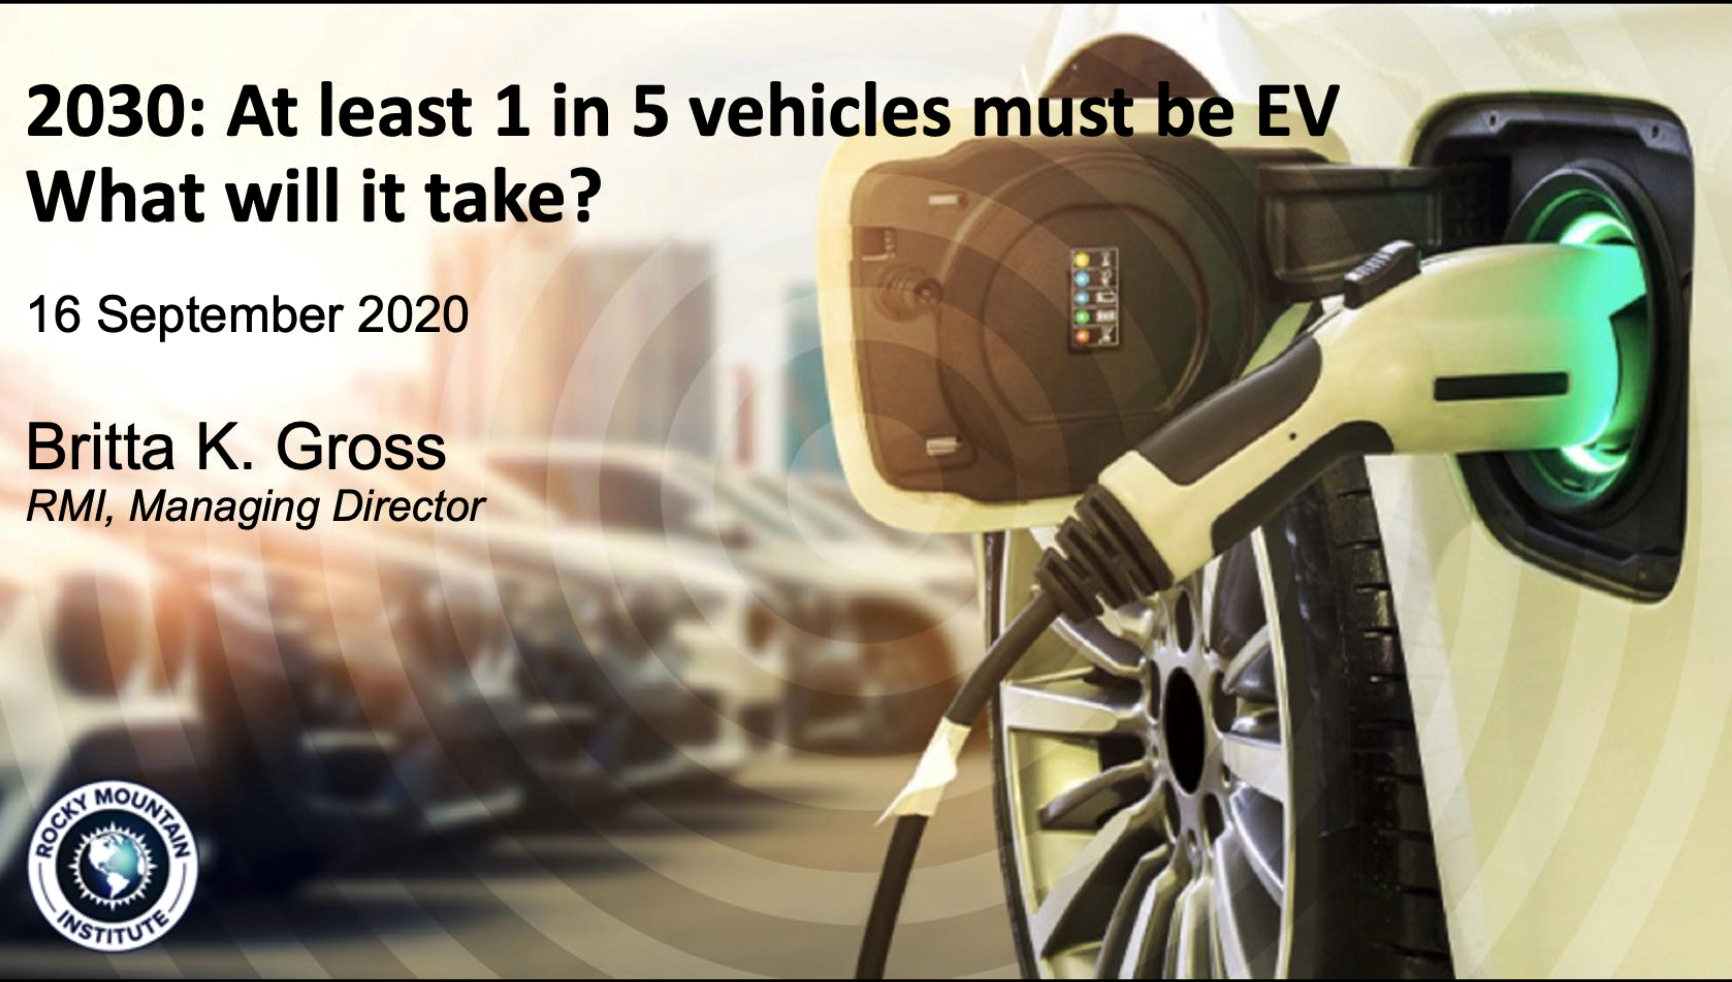 Can the US Reach 50 Million EVs in Operation by 2030?